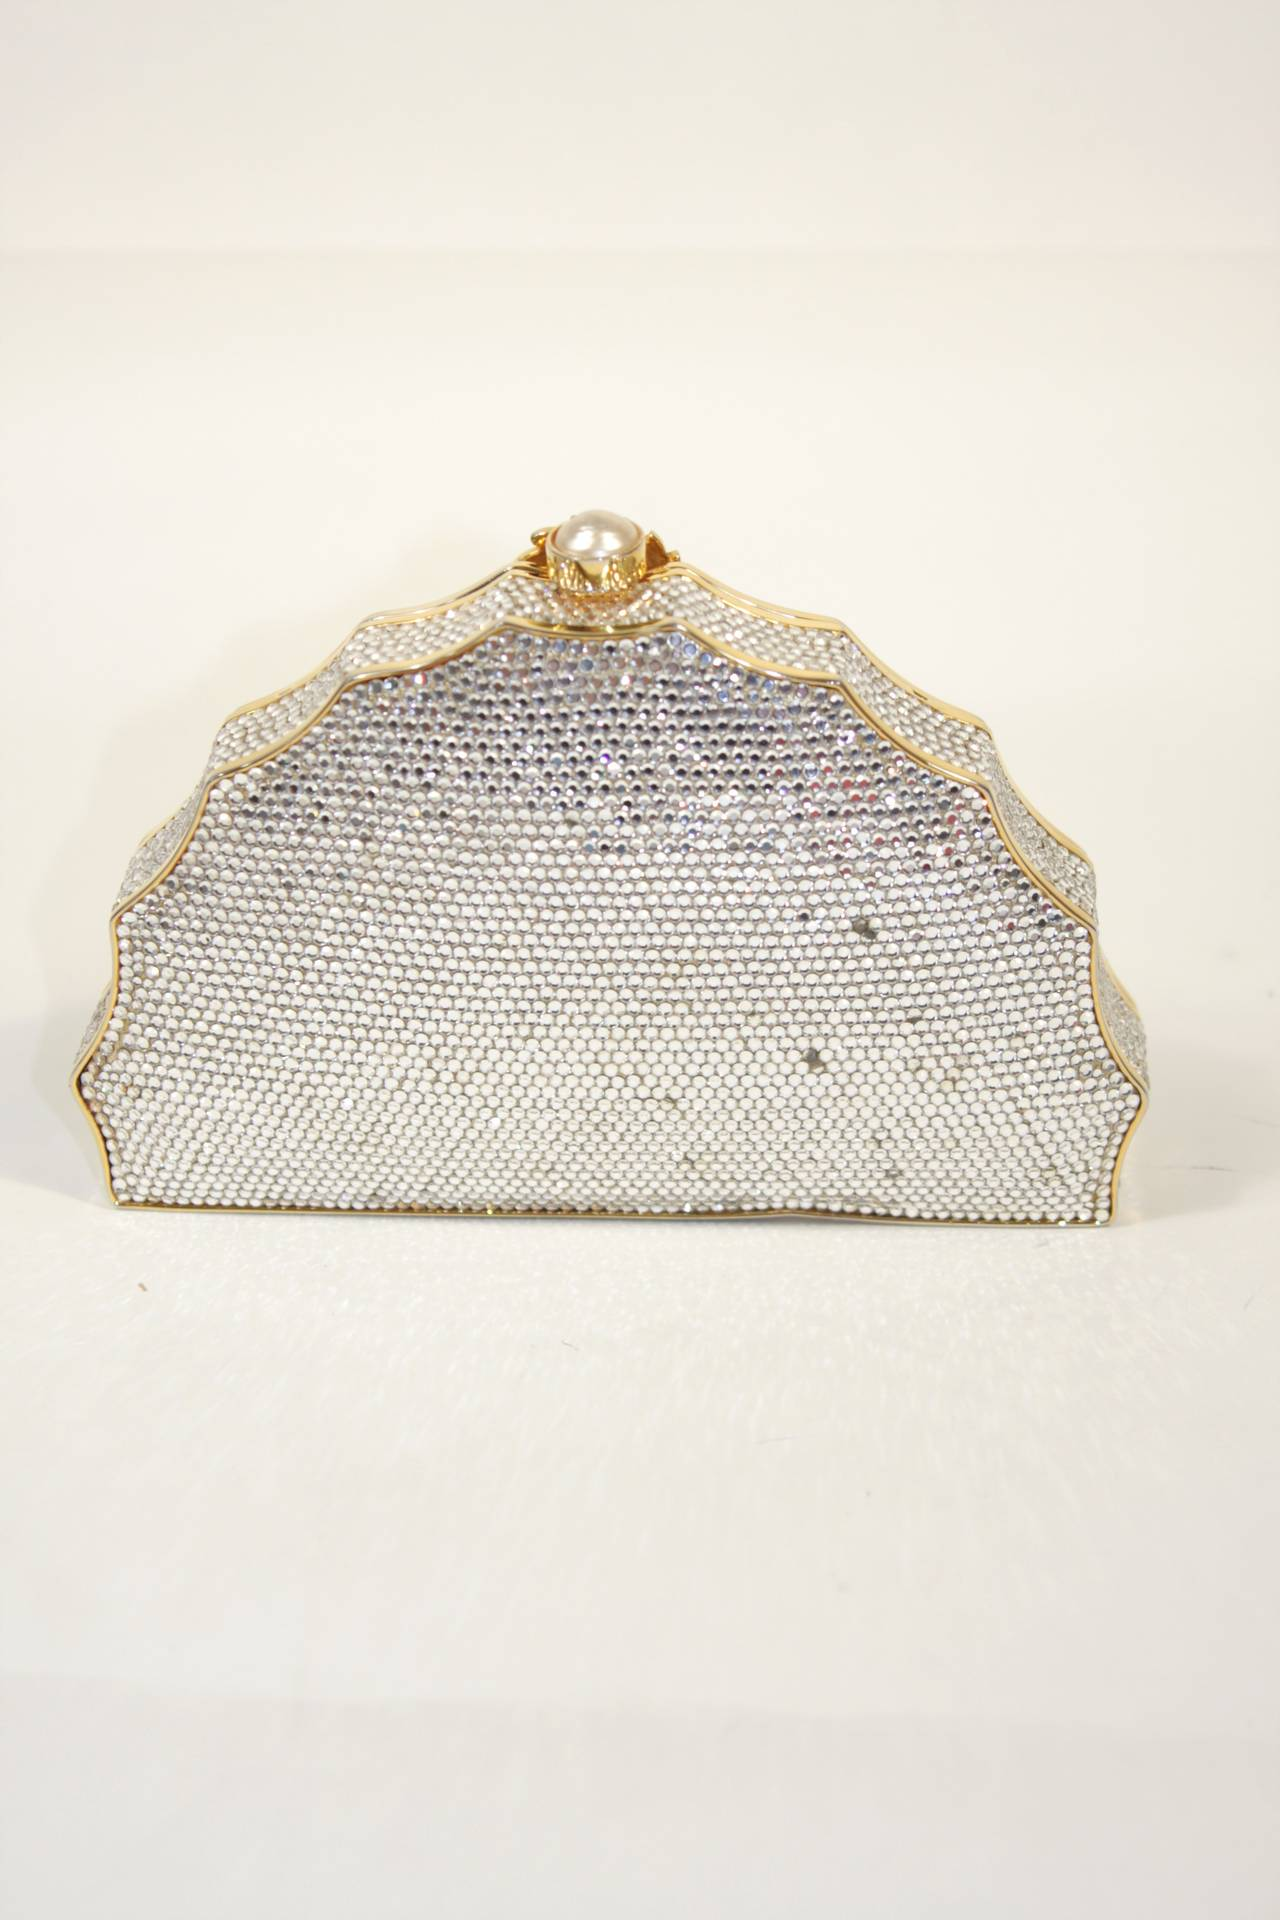 JUDITH LEIBER Classic Pave Rhinestone Minaudiare  with Chain Strap & Gold Detail 6